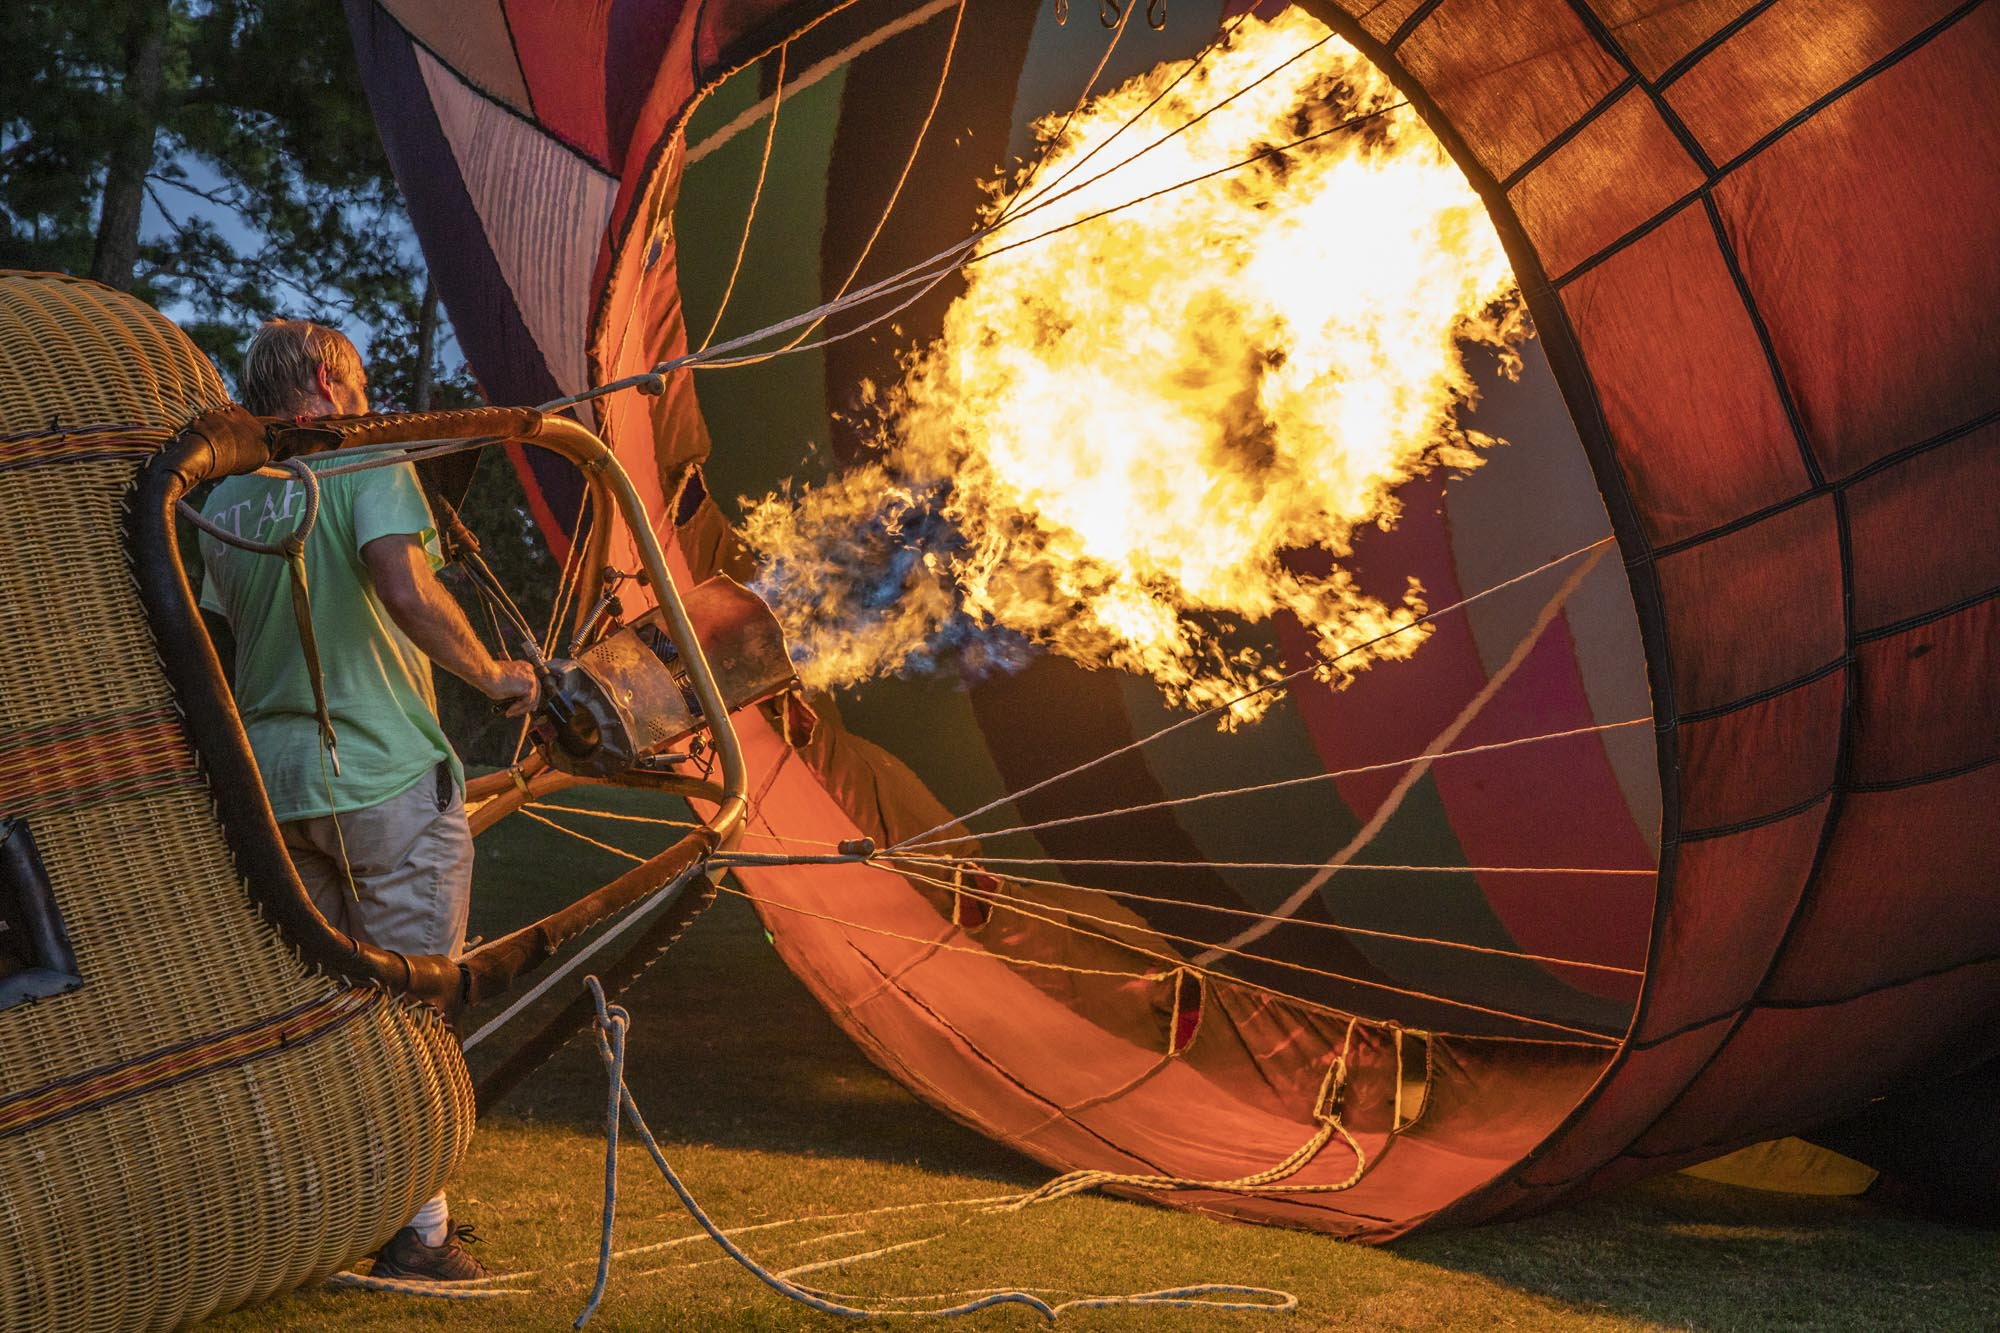 Filling the balloon with hot air. Pretty spectacular at dusk.